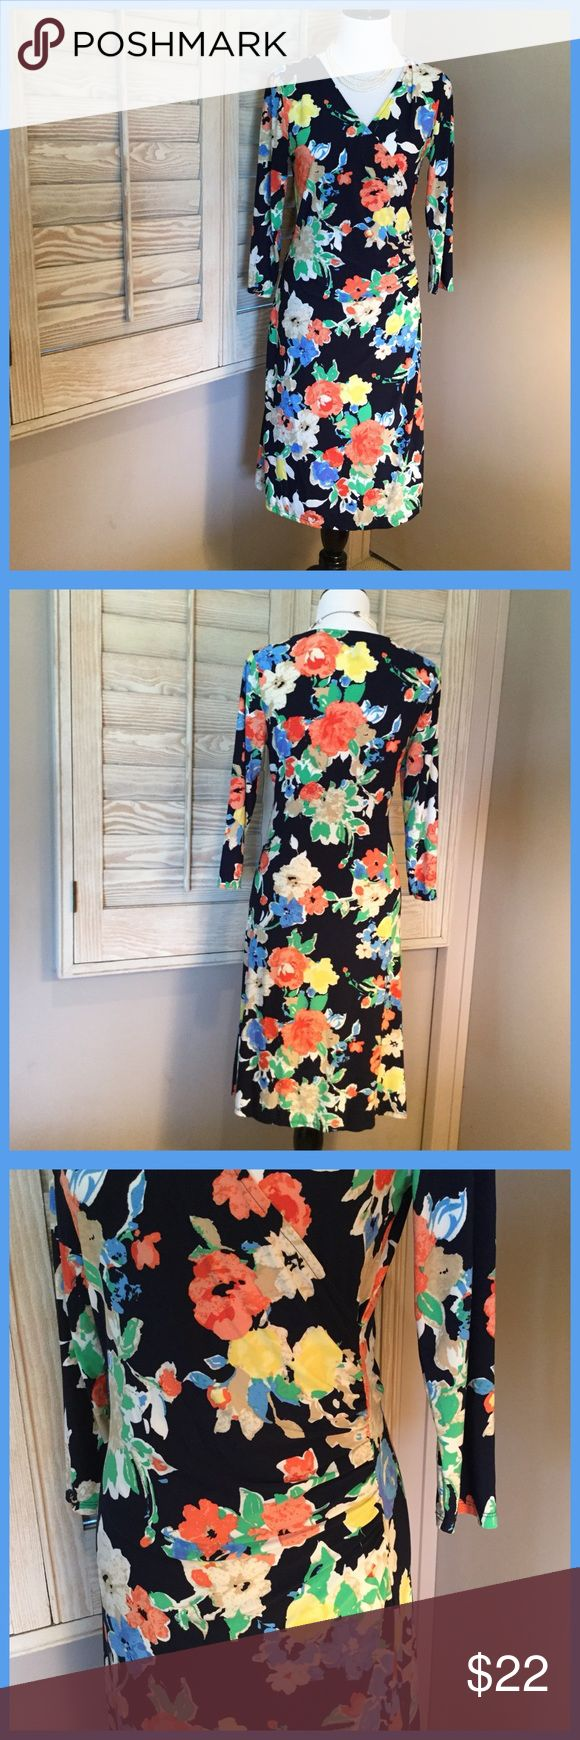 💐LAUREN BY RALPH LAURN DRESS💐 Lauren by Ralph Lauren like new only worn once in excellent condition with V neckline and tummy flattering gathers at the waistline. 40 inches from neckline to hem. Stretching fabric for comfy all say ware Lauren Ralph Lauren Dresses